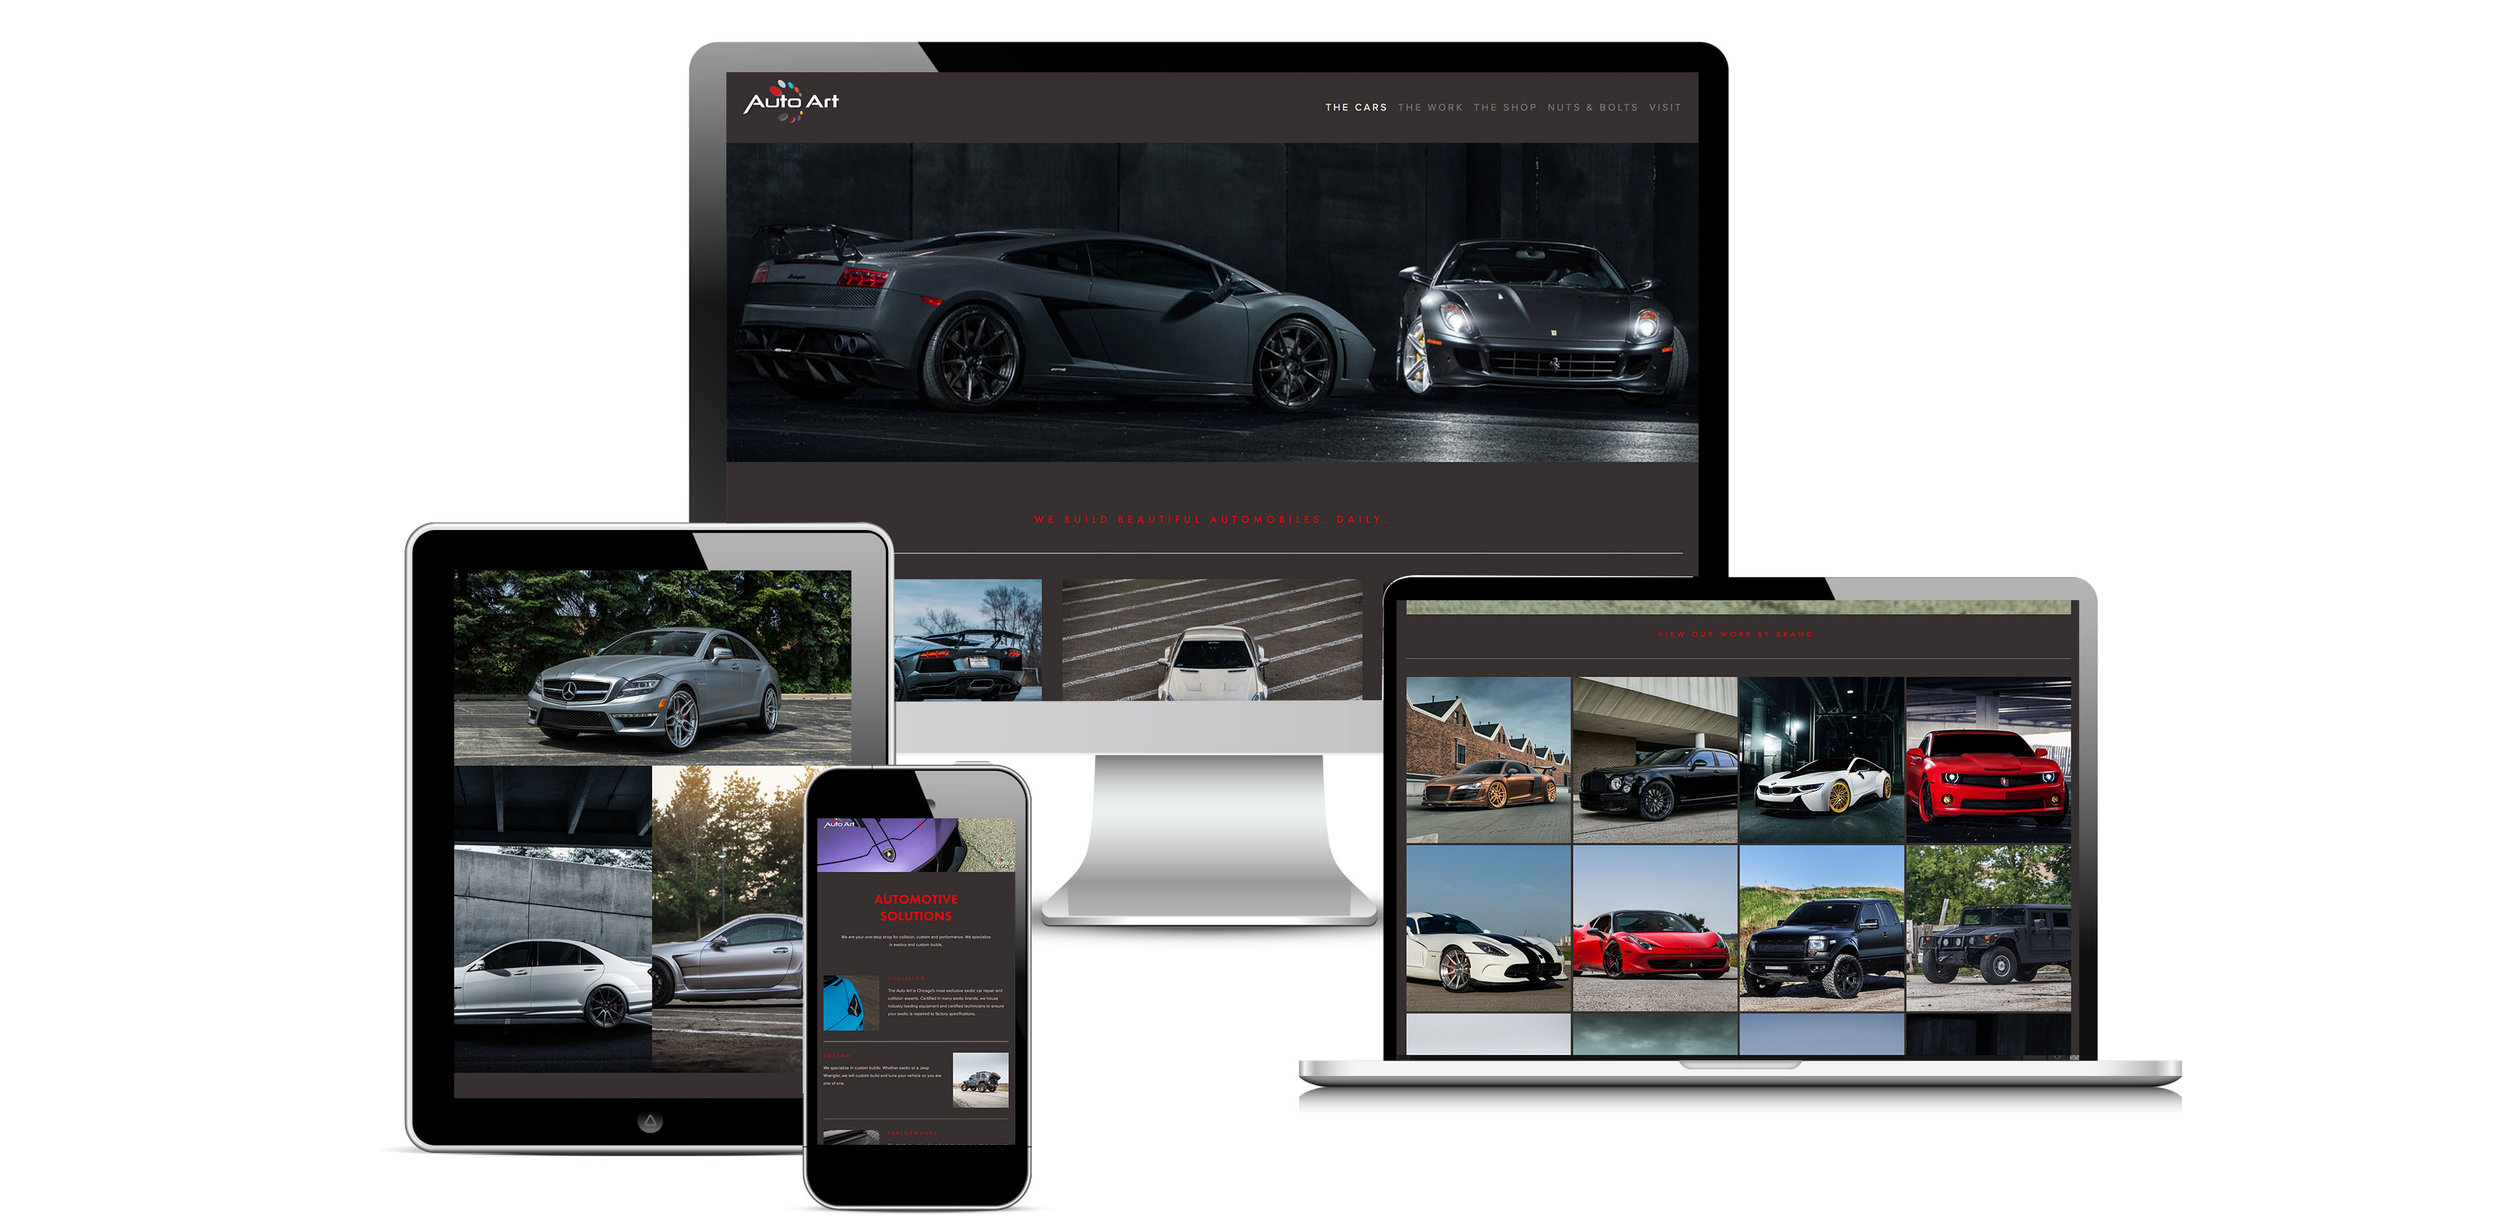 motorsports-automotive-customization-marketing-branding-websites-collateral-photography-video-chicago